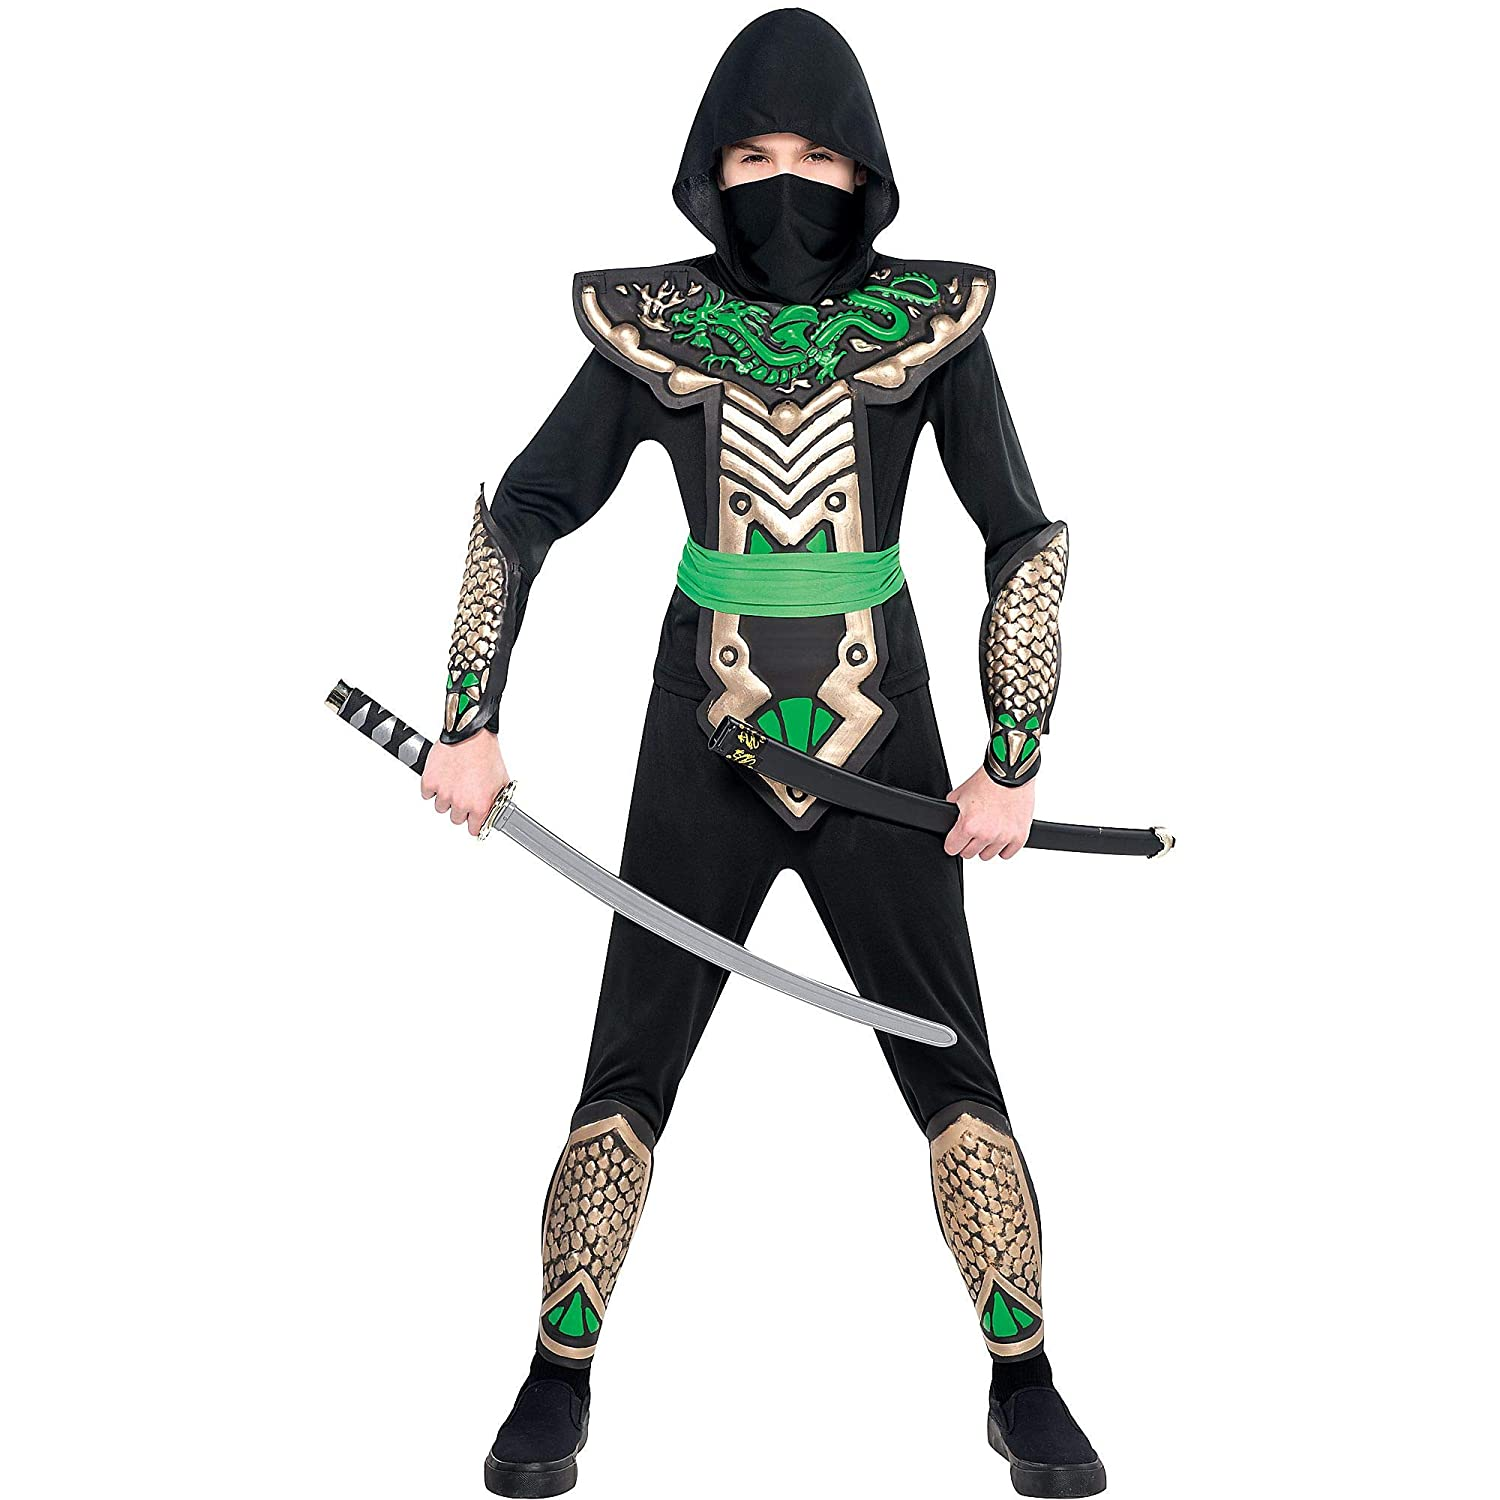 AMSCAN Ninja Dragon Halloween Costume for Boys, Small, with Included Accessories